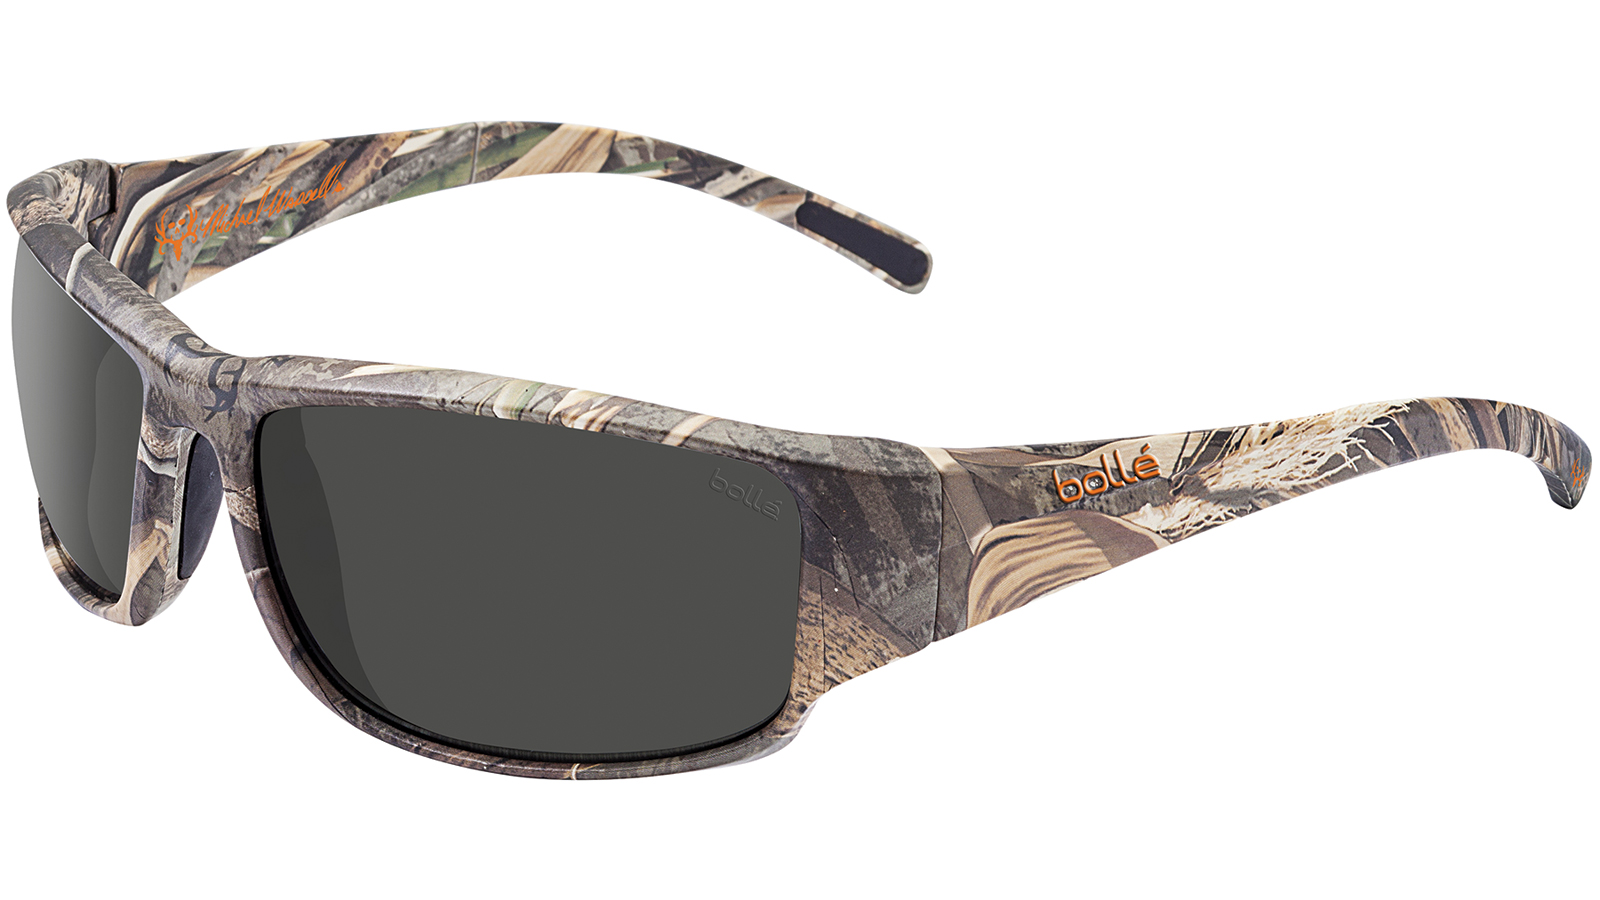 Bolle 12039 Keelback Shooting|Sporting Glasses Realtree Xtra